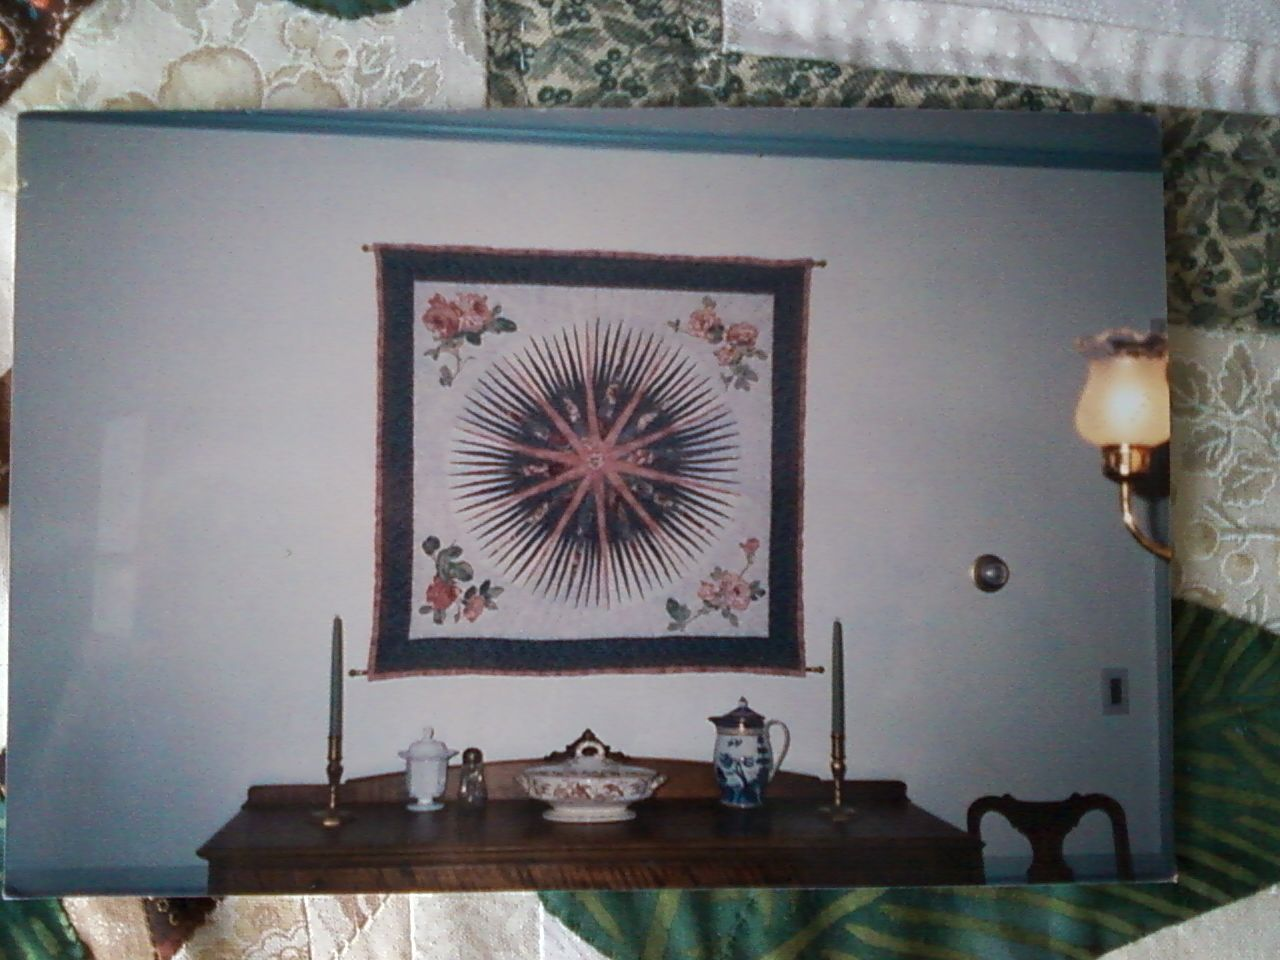 Wall hanging I made for my mom. Mariner's compass with floral applique.